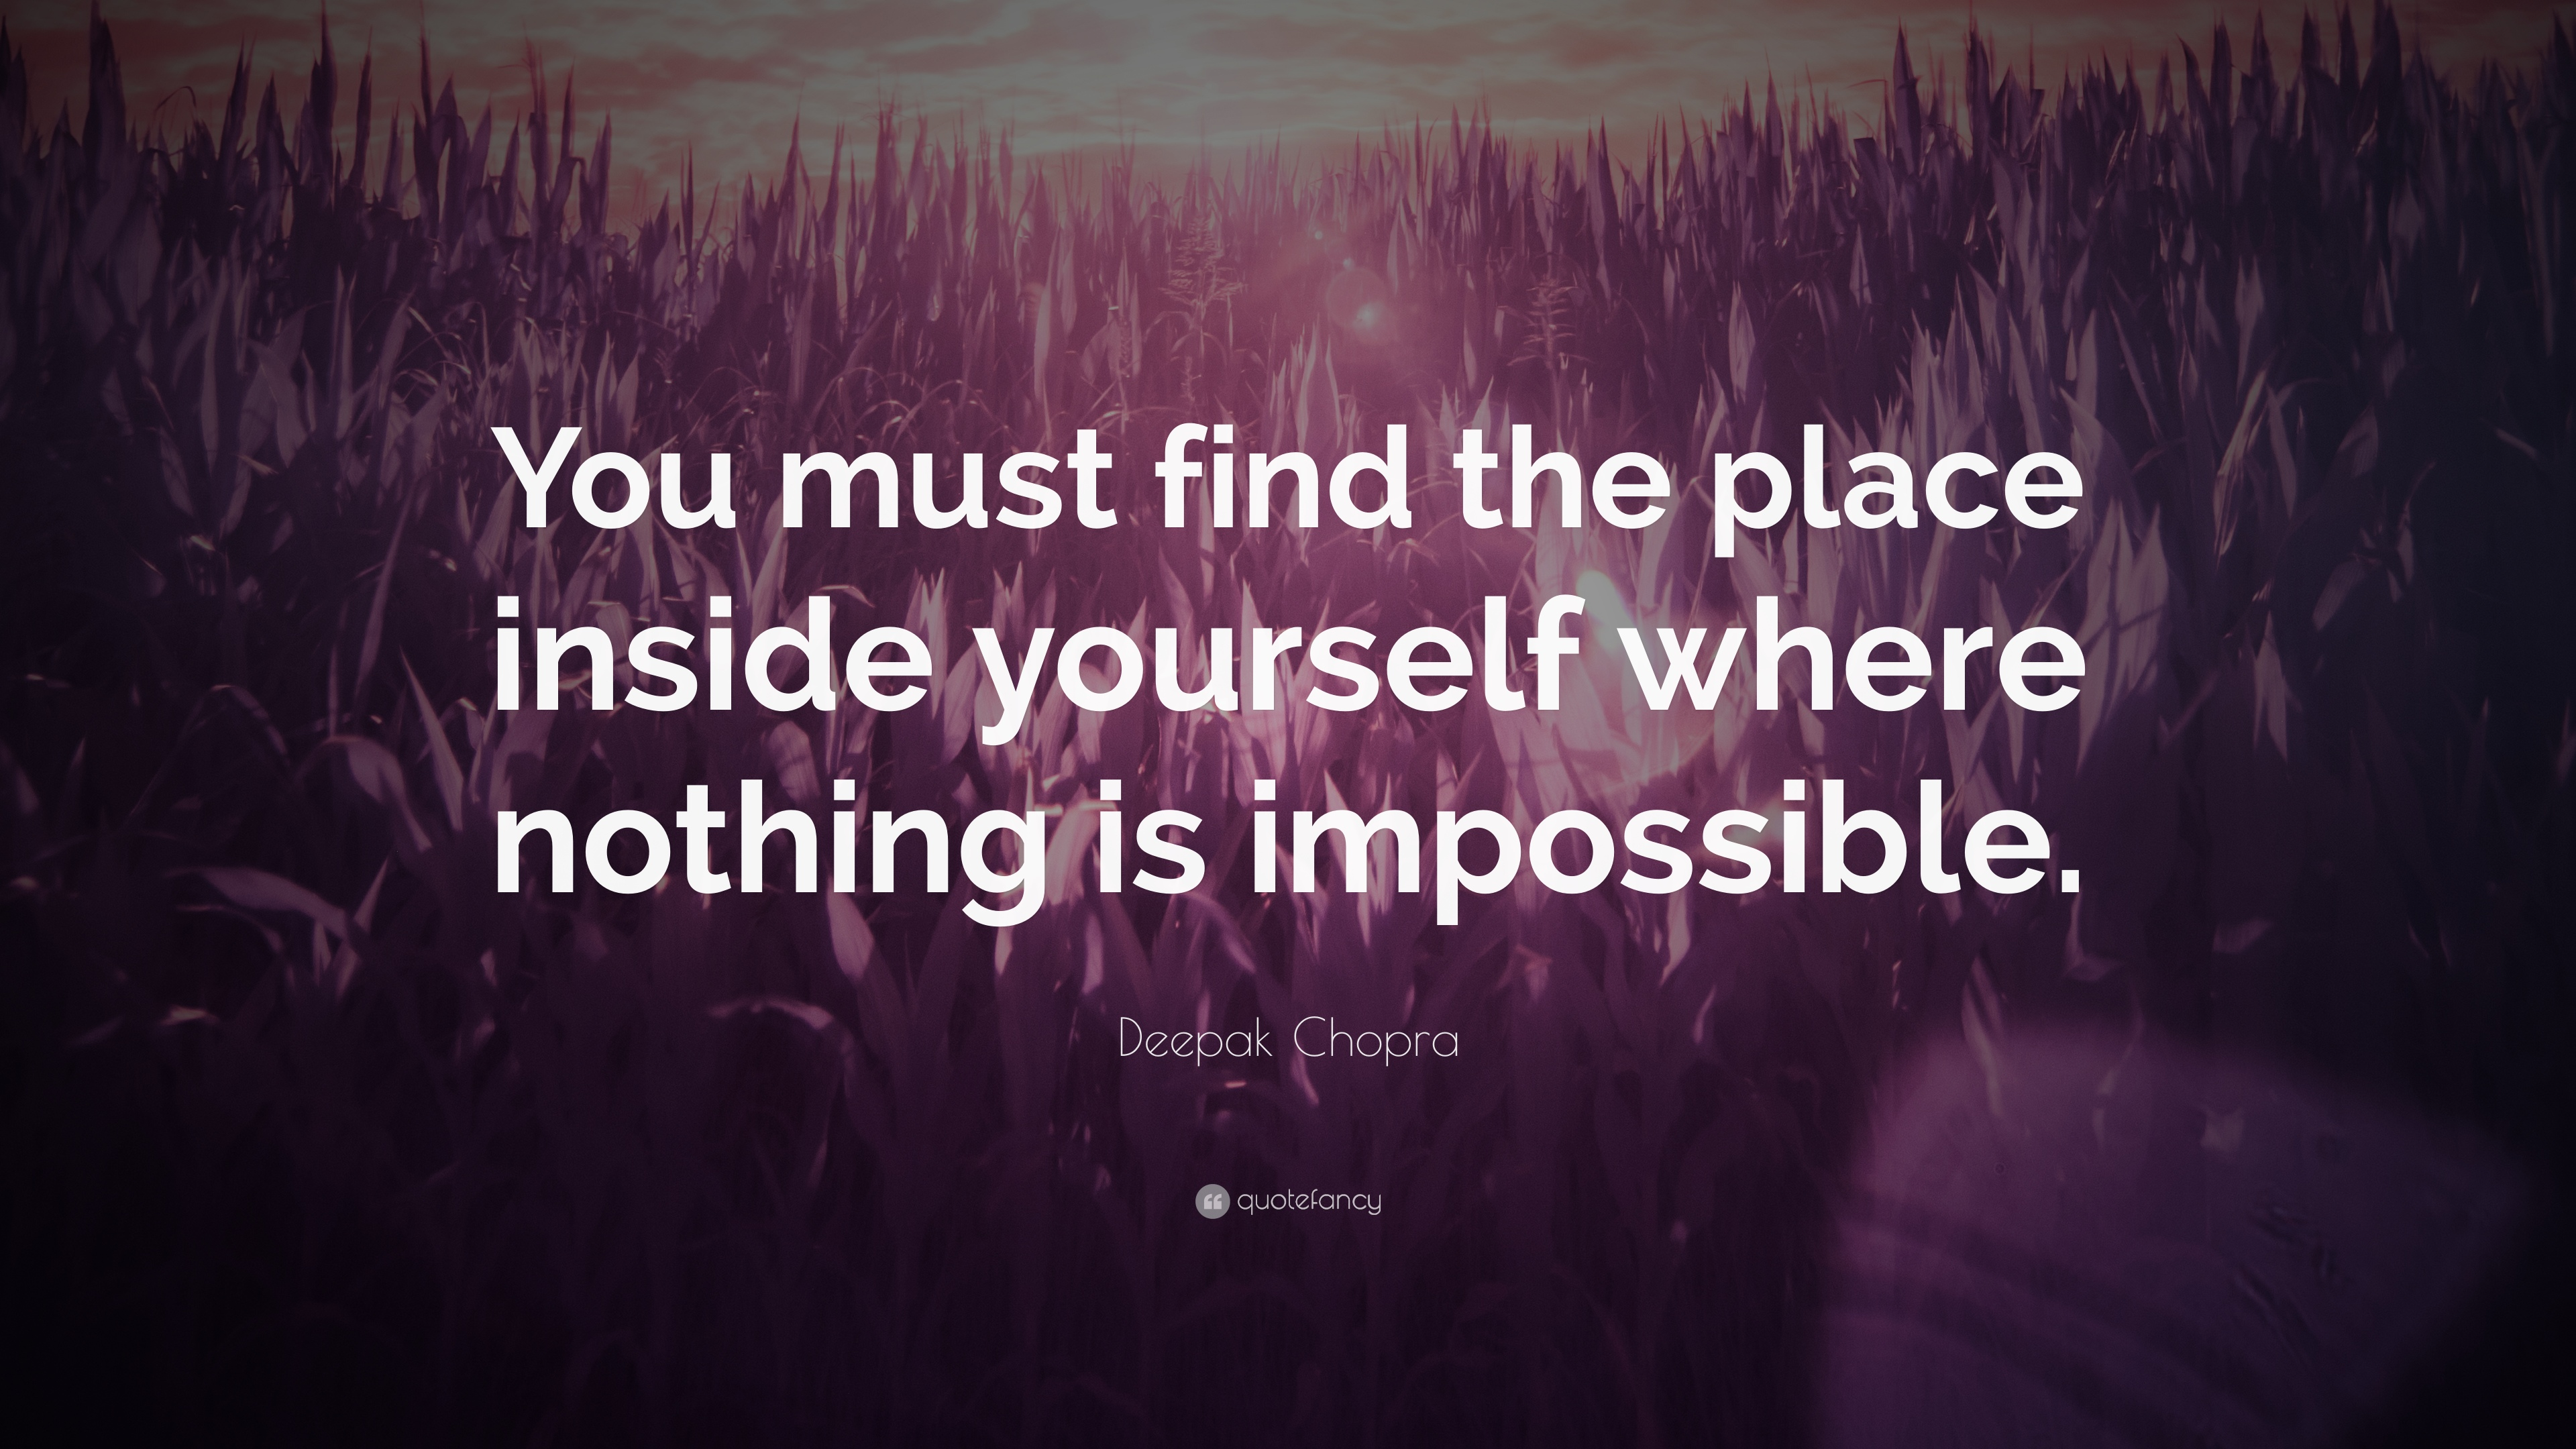 Yoga Quotes You Must Find The Place Inside Yourself Where Nothing Is Impossible